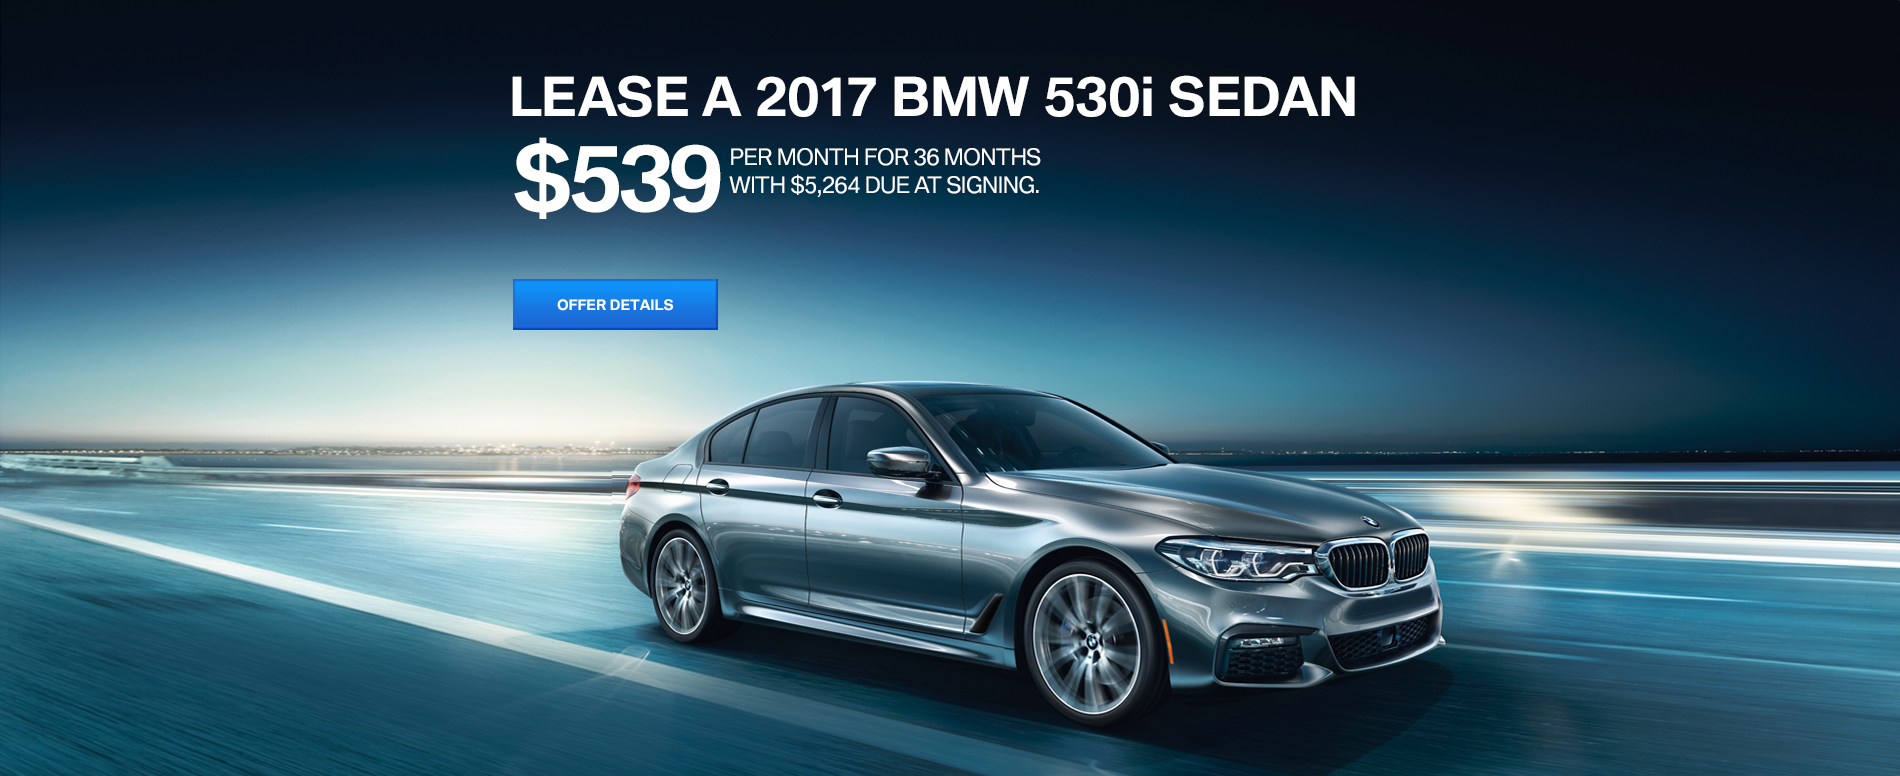 LEASE A 2017 BMW 530i SEDAN FOR $539/MO FOR 36 MONTHS